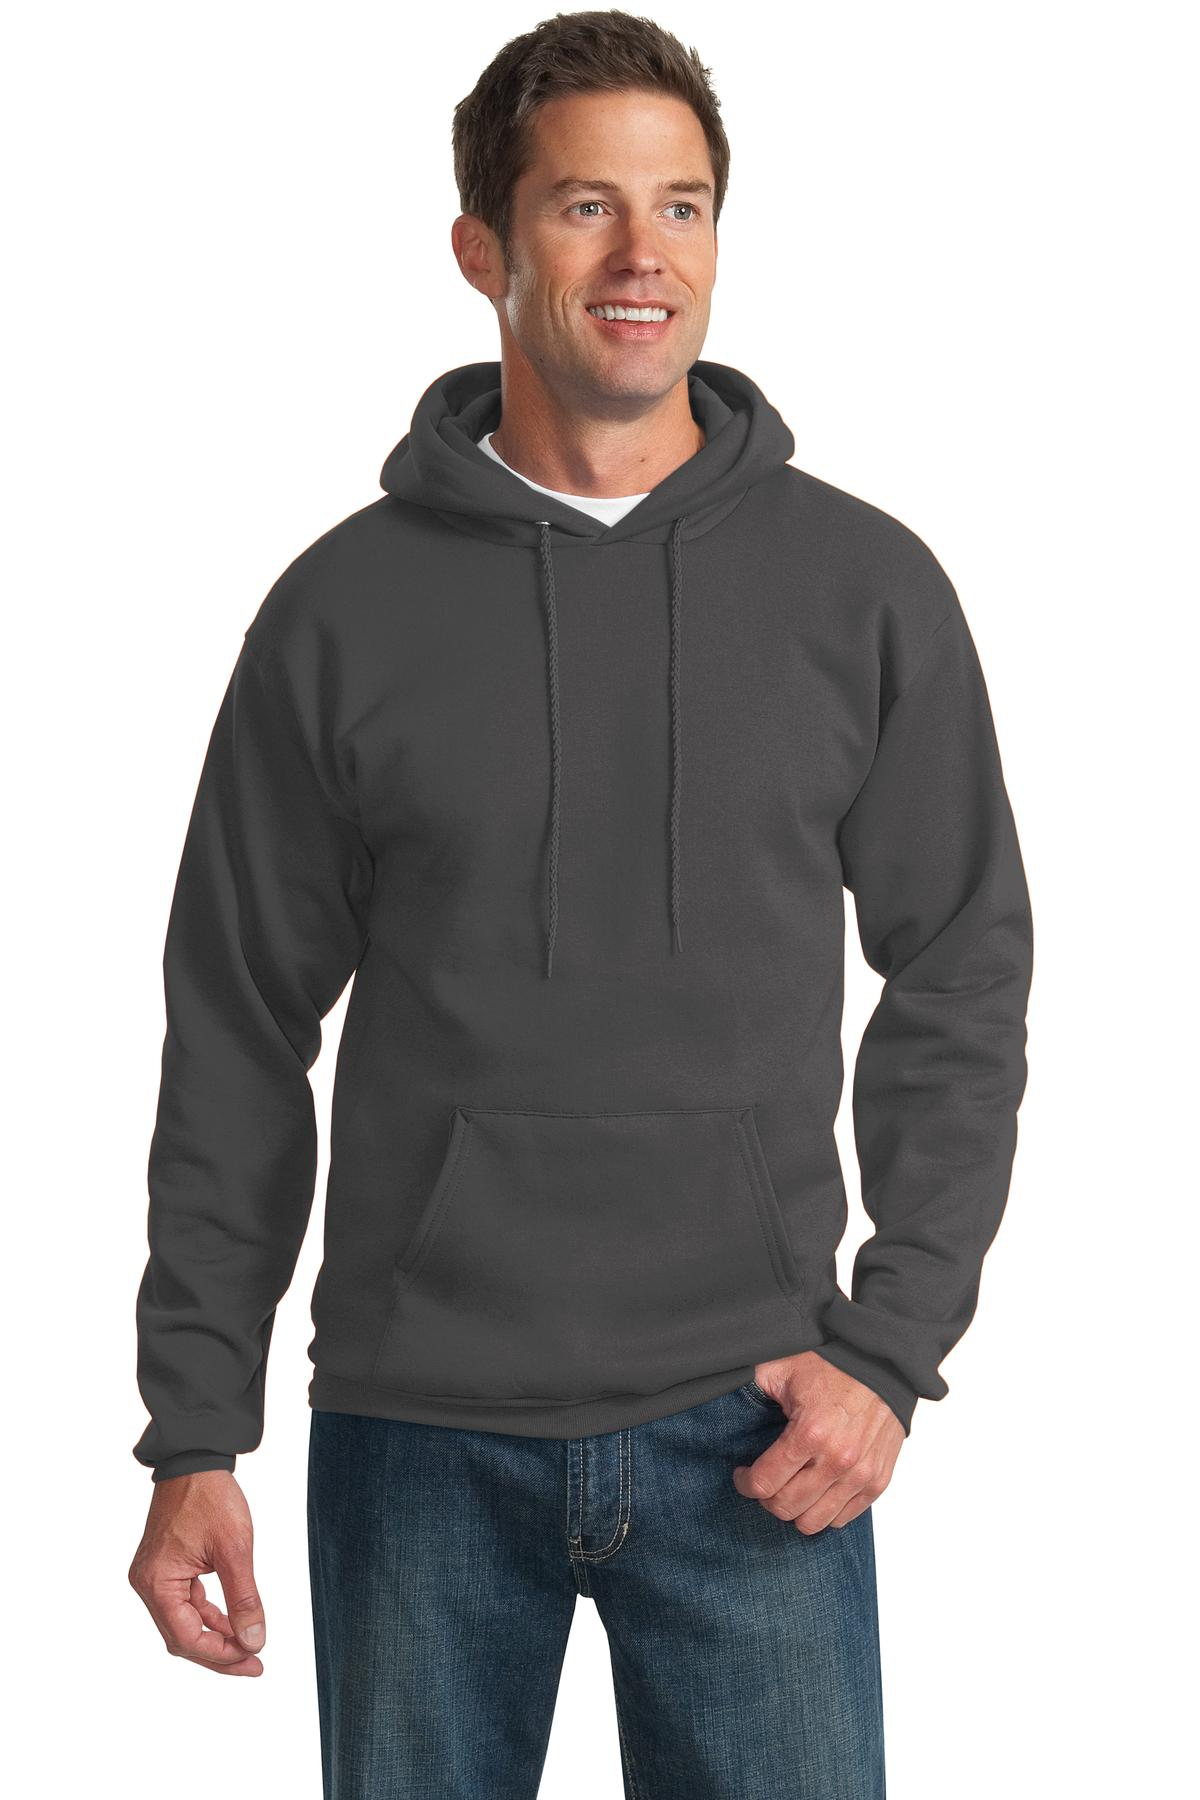 Port & Company ®  -  Essential Fleece Pullover Hooded Sweatshirt.  PC90H - Charcoal